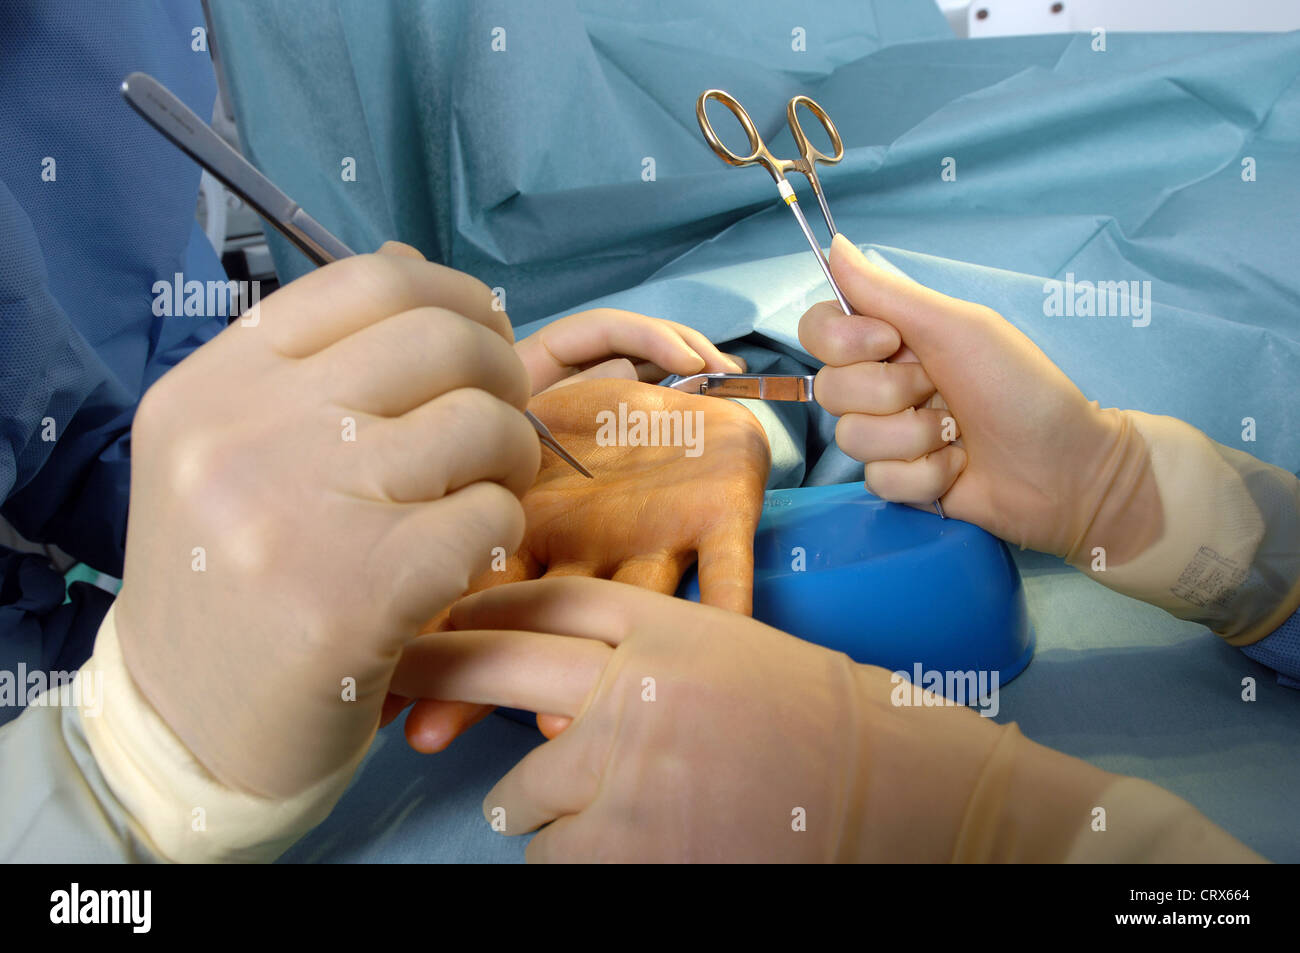 A surgeon preparing to operate on a patient's hand. - Stock Image